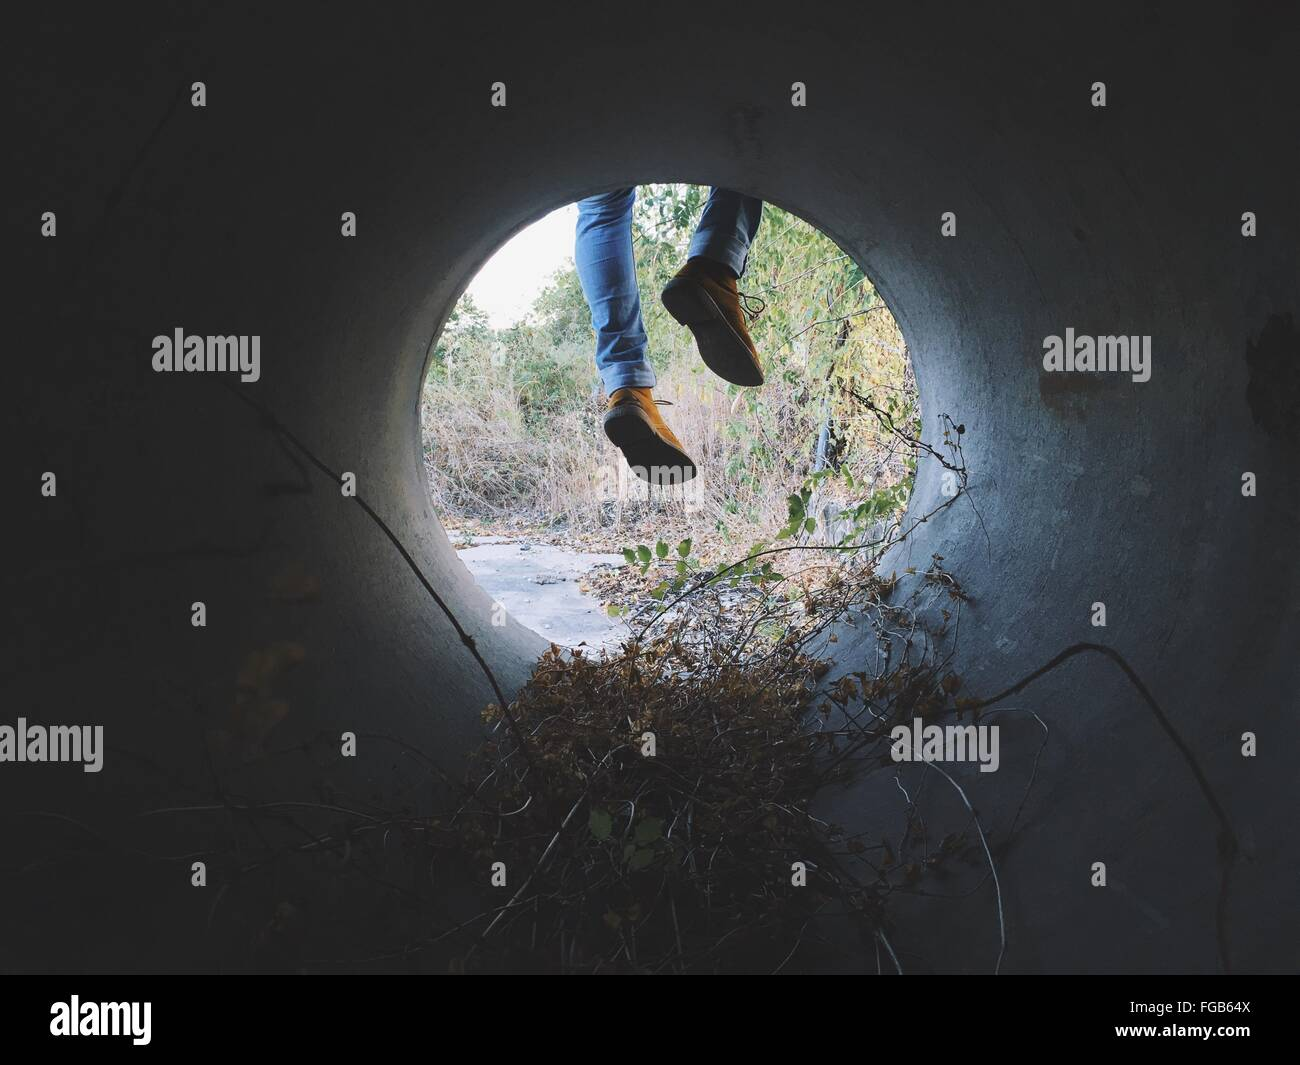 Low Section Of Man Legs Seen Through Pipe - Stock Image